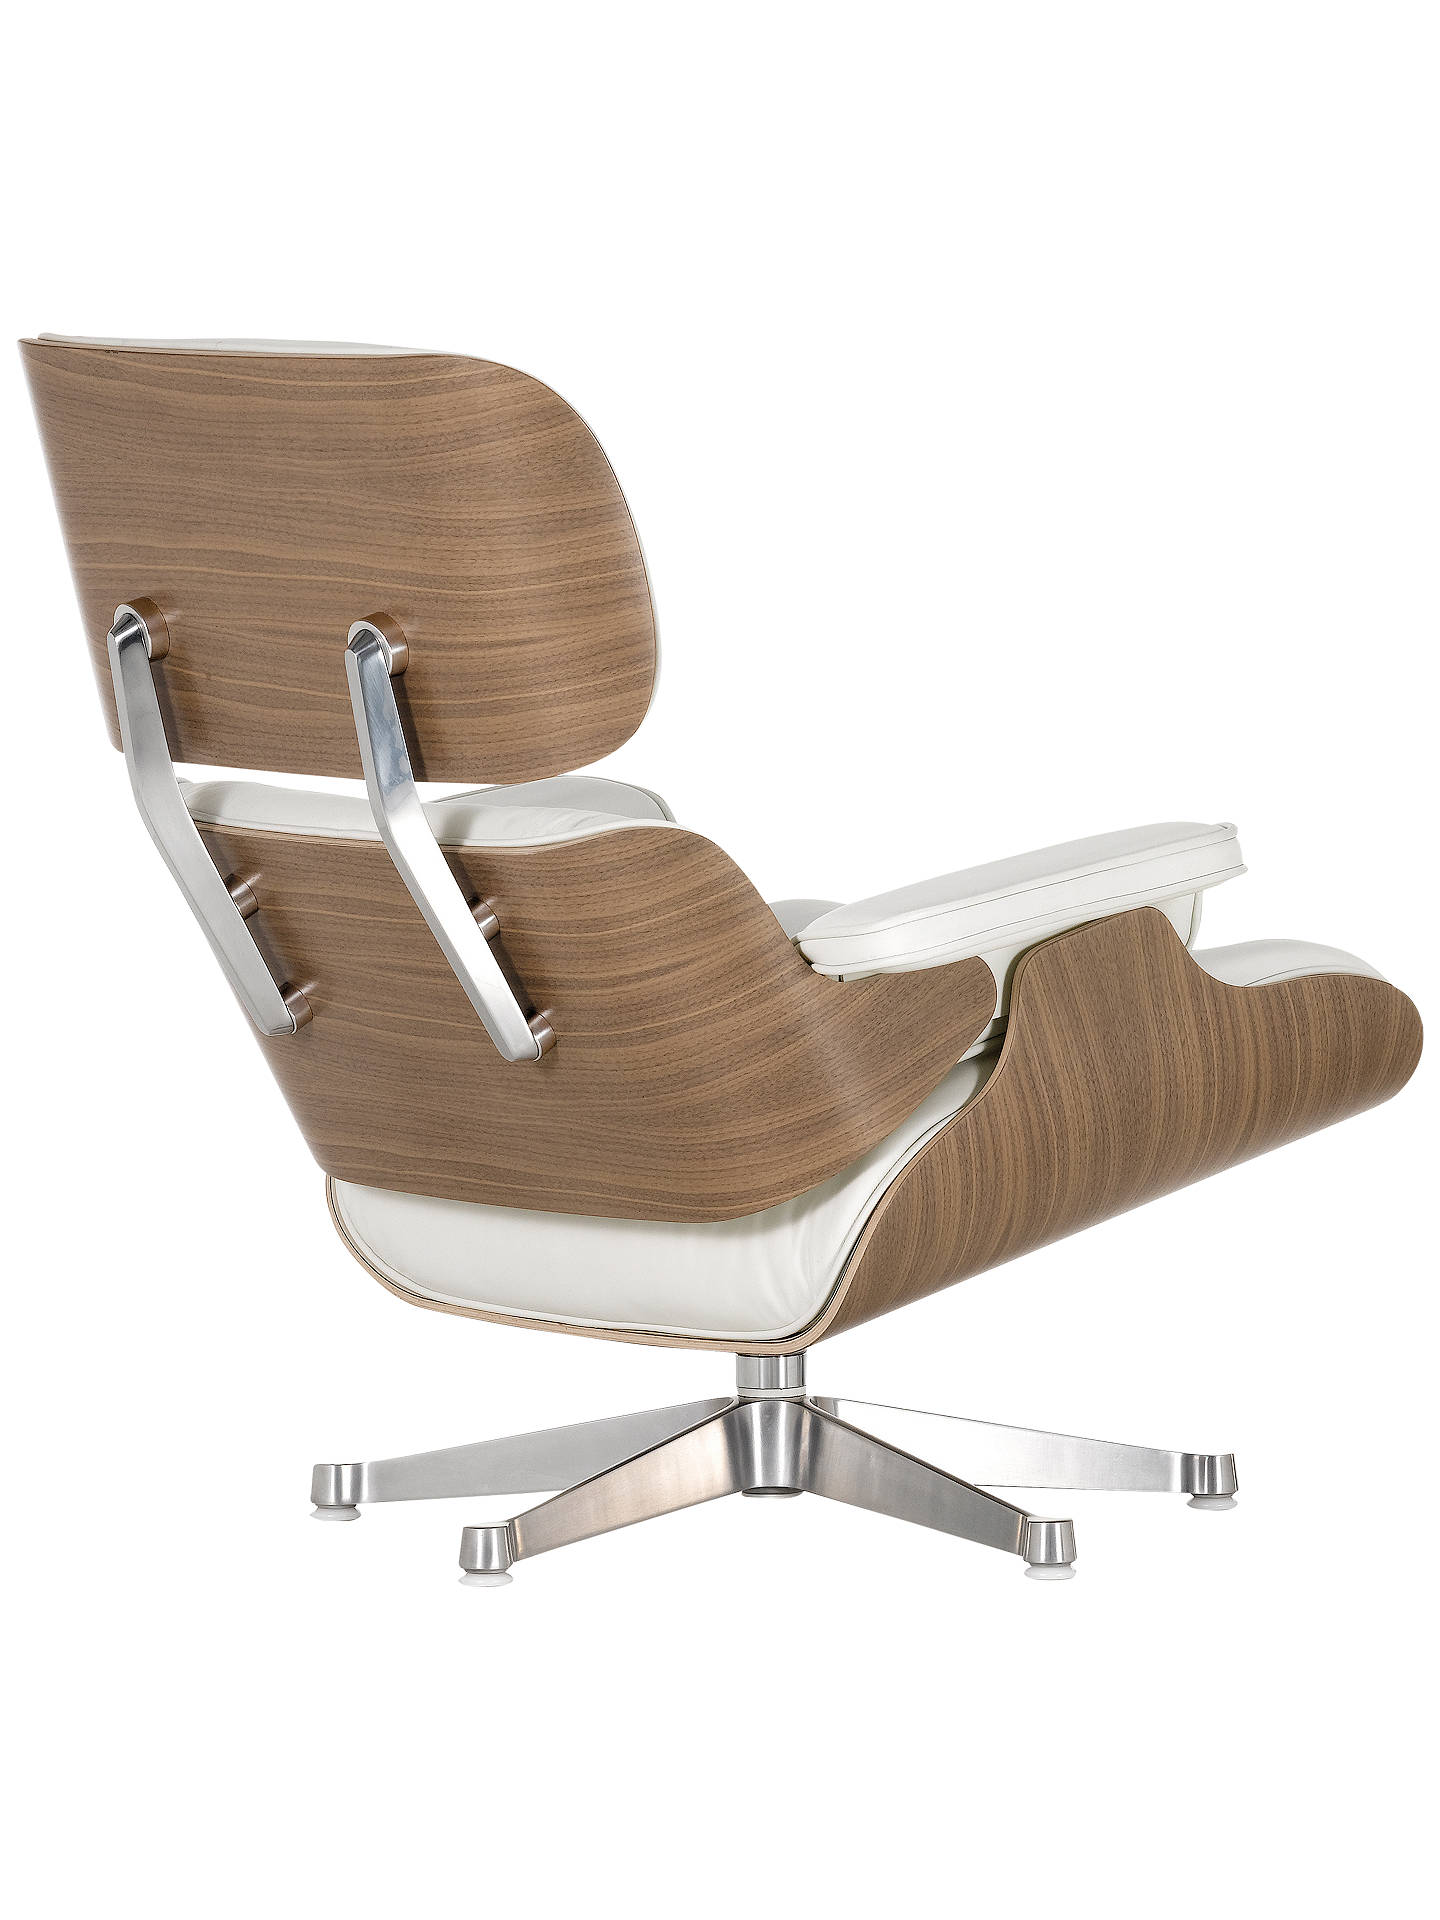 BuyVitra Eames Lounge Armchair, White/ Walnut Shell Online at johnlewis.com